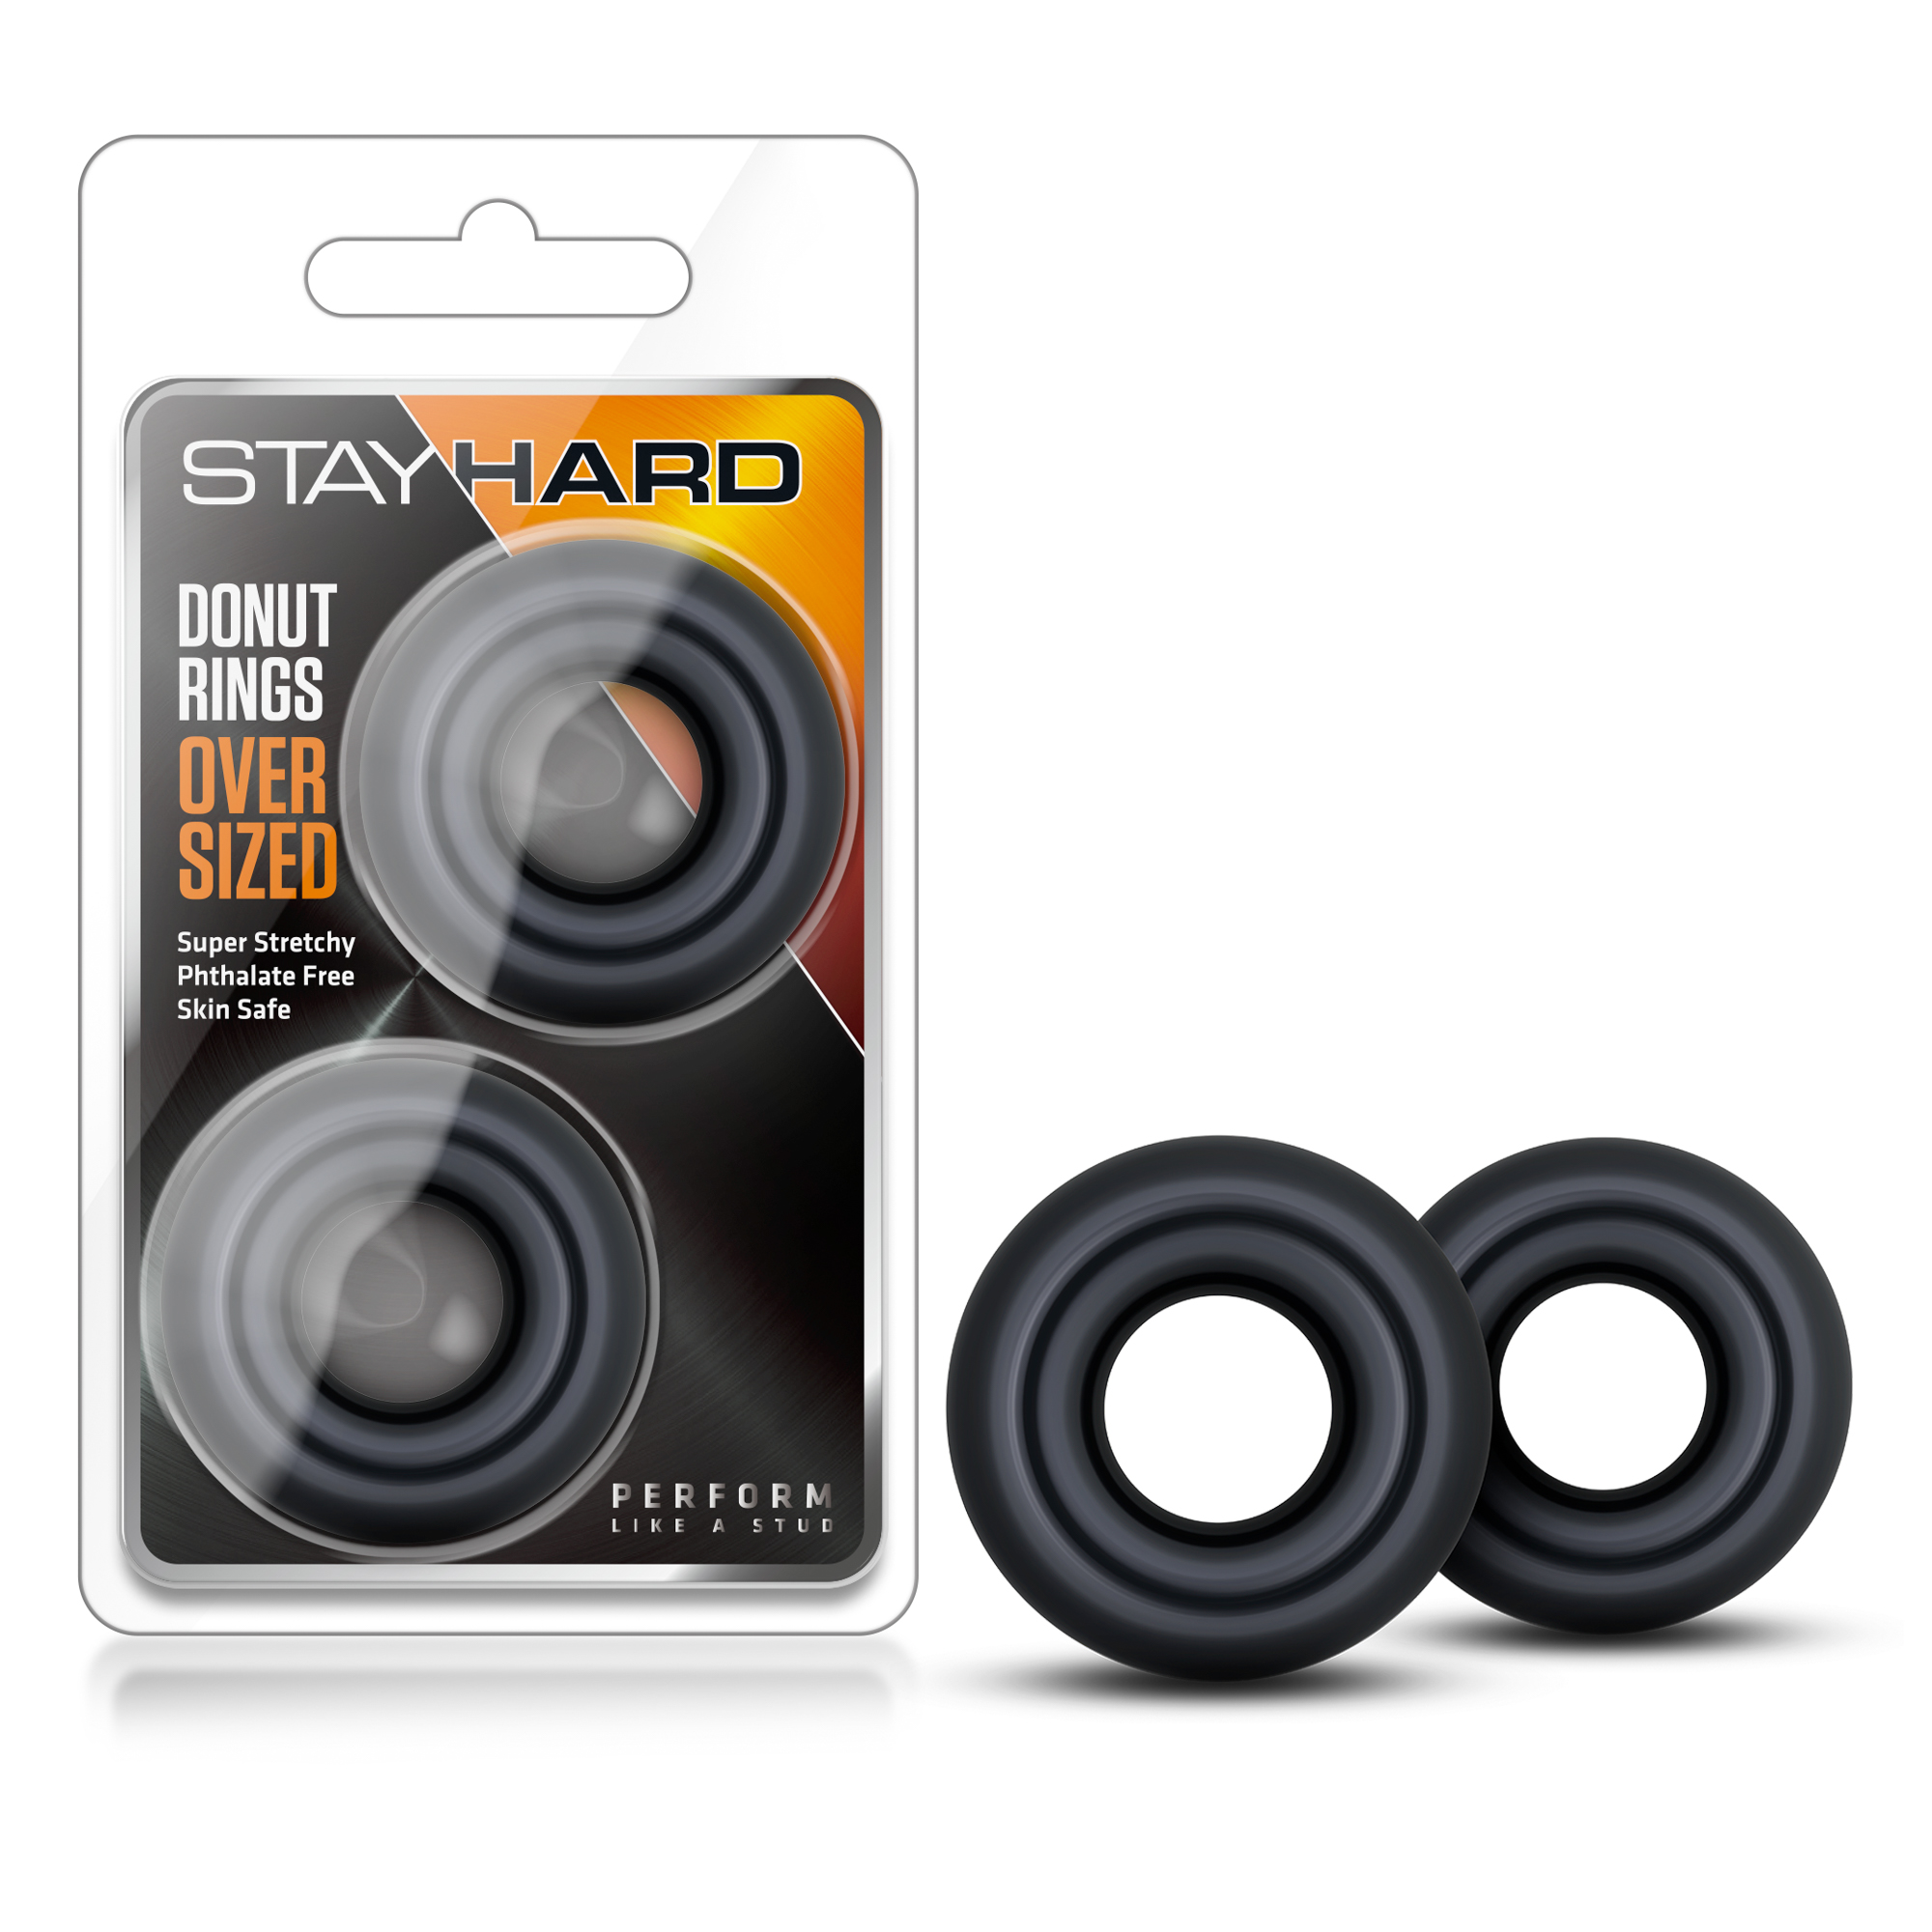 Stay Hard Donut Rings - Over Sized